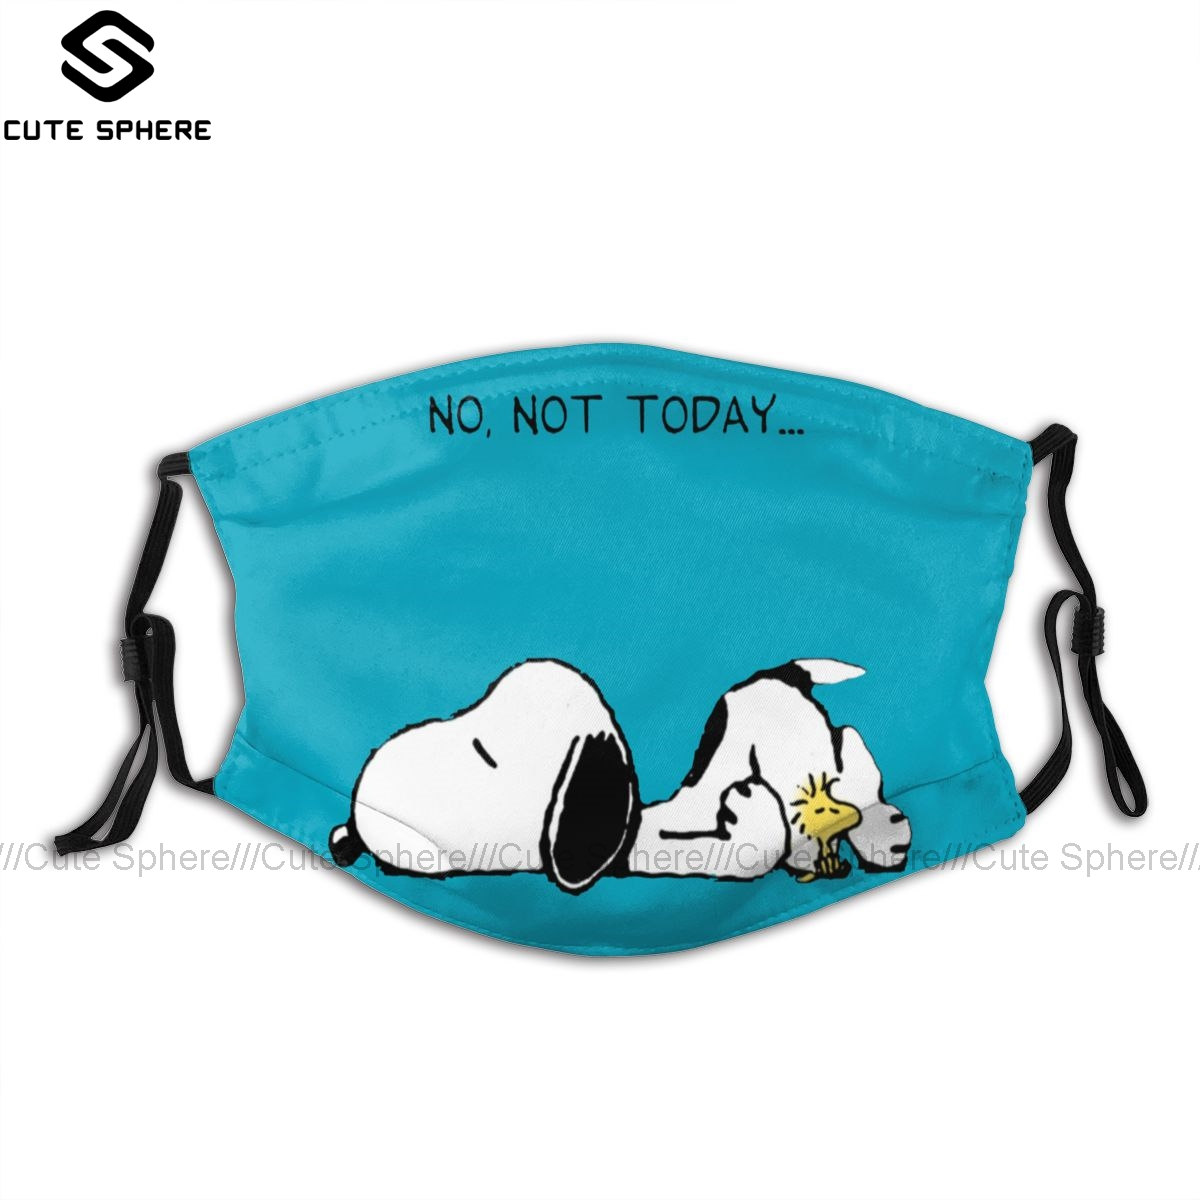 Peanuts Mouth Face Mask No Not Today Facial Mask Fashion Funny With 2 Filters For Adult